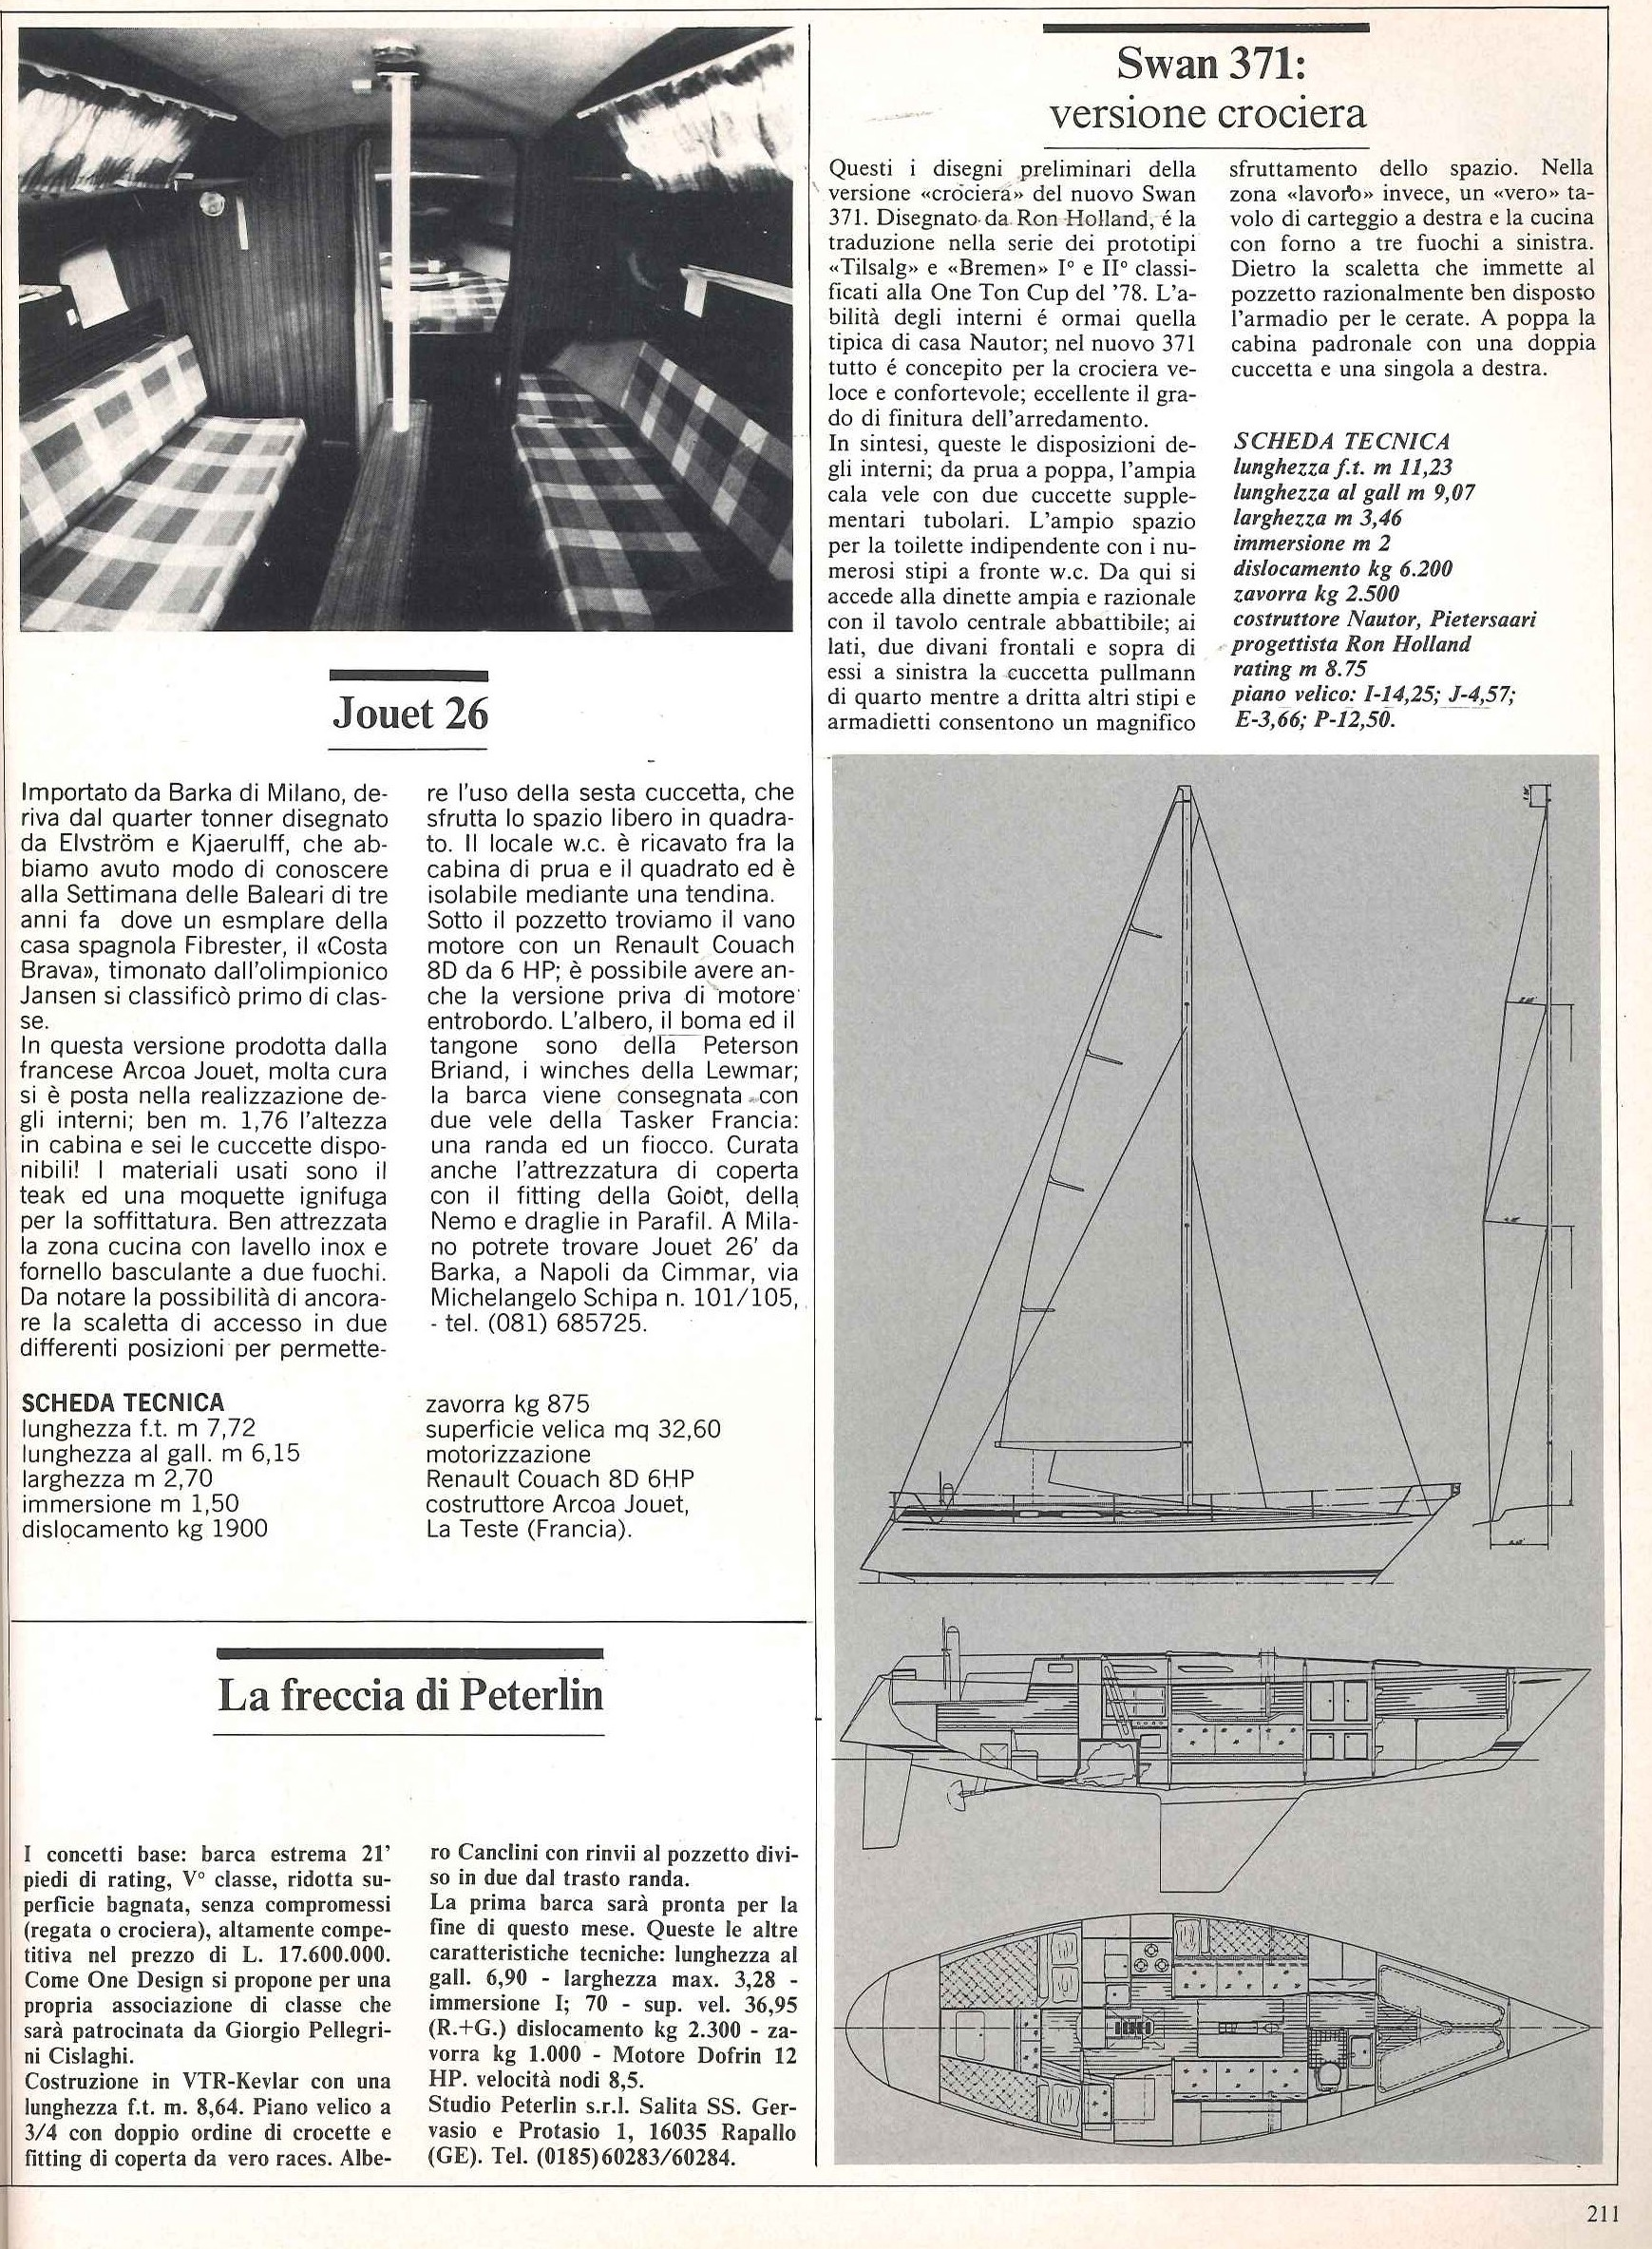 File:1979 04 PRESS JOUET 26; SWAN 371 e PETERLIN UOMO MARE N°32.jpg